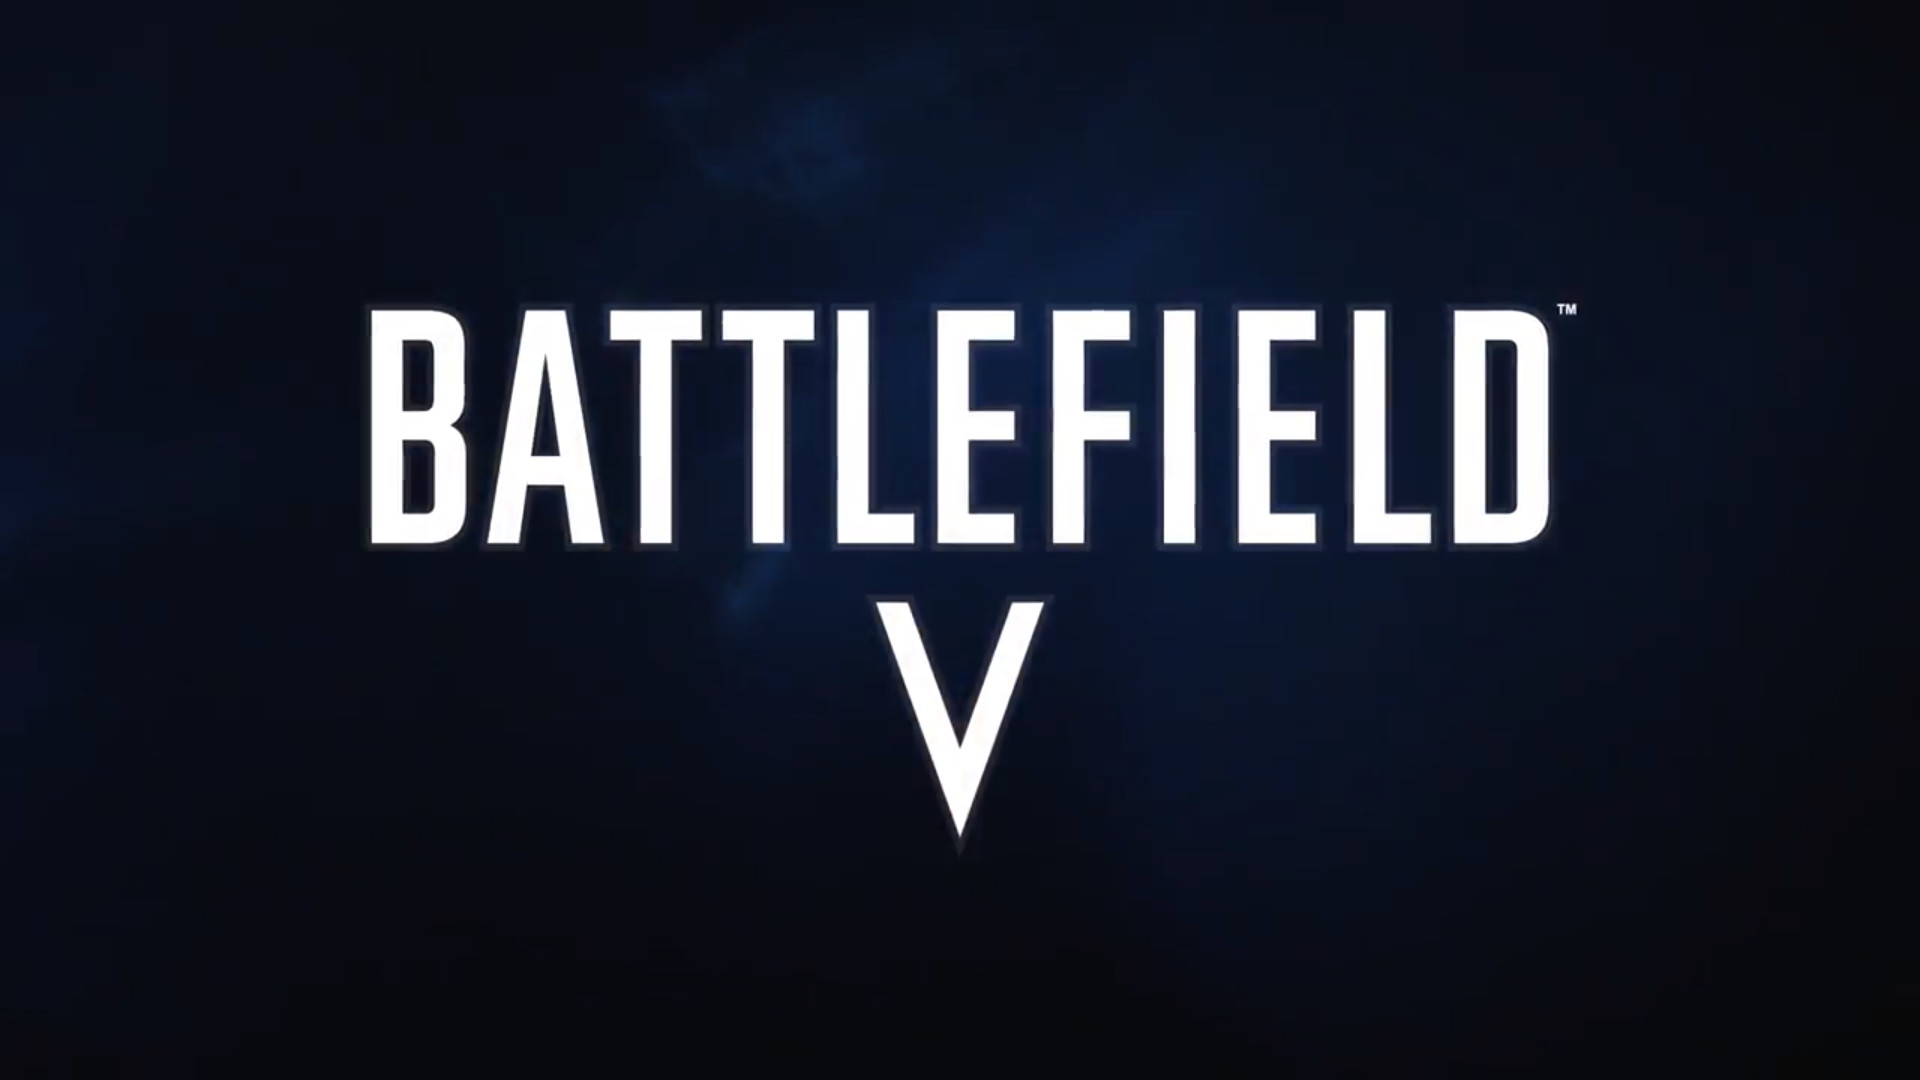 Battlefield V has been delayed by one month